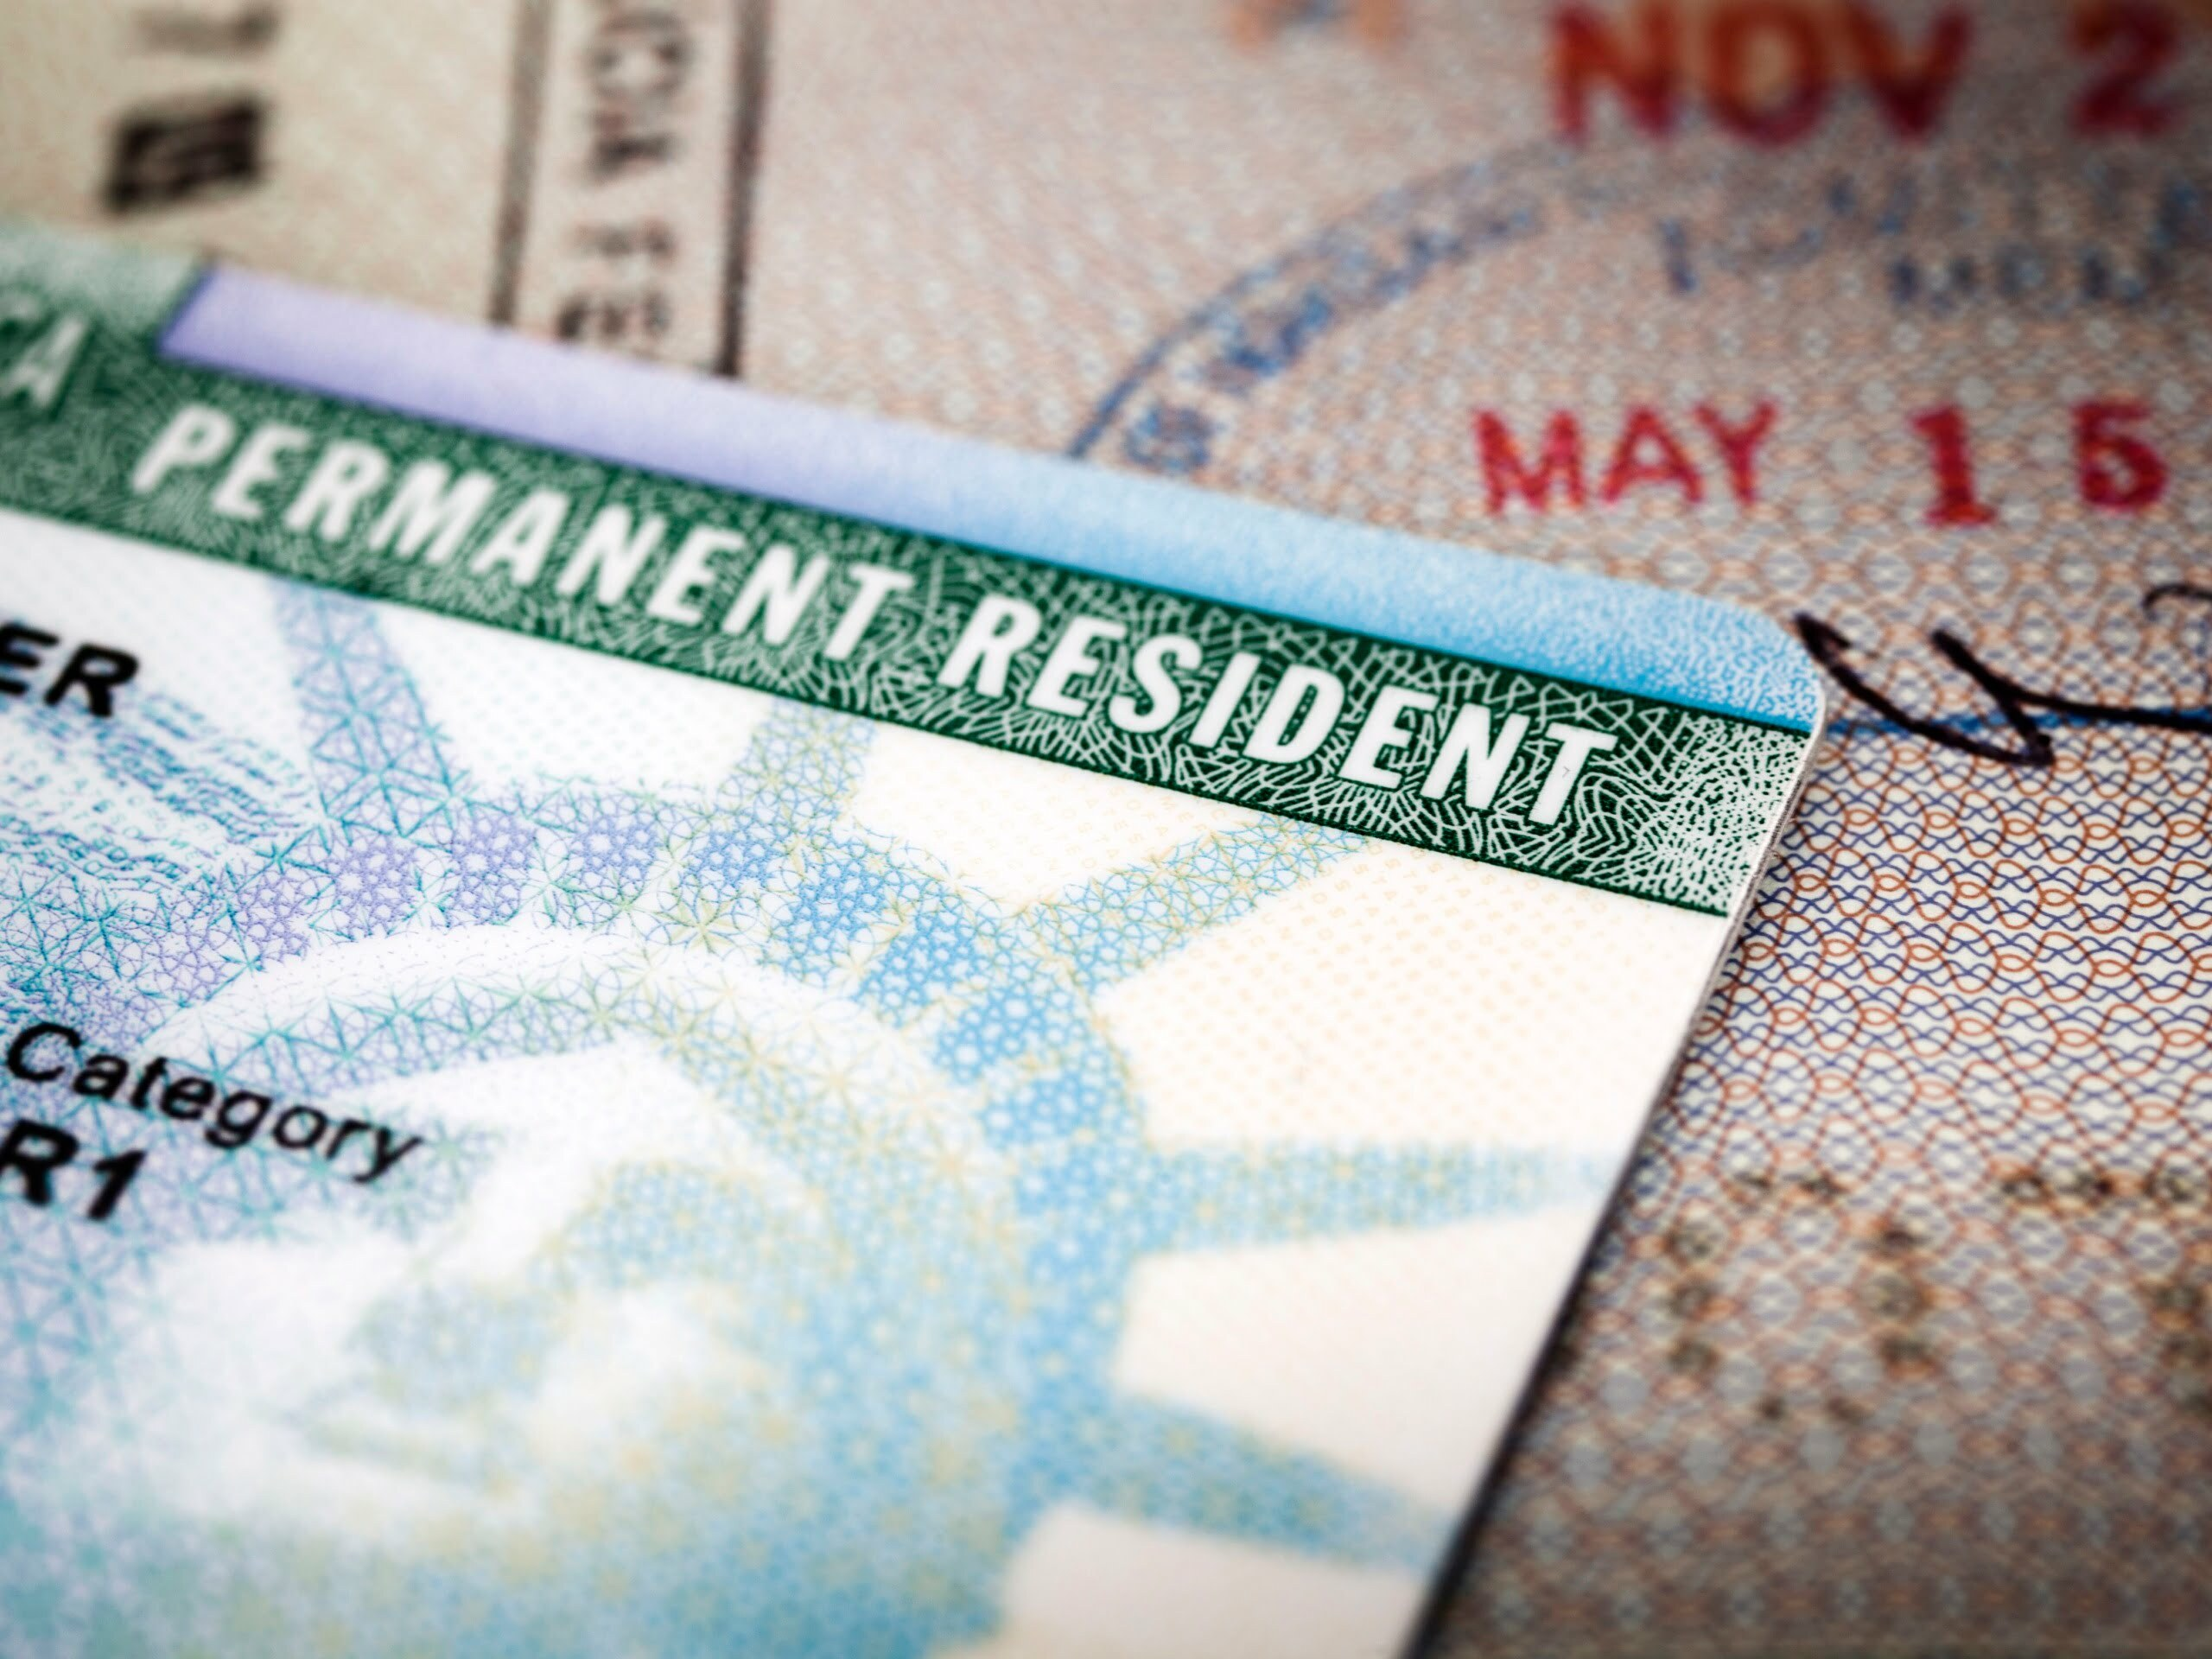 How to qualify for a green card